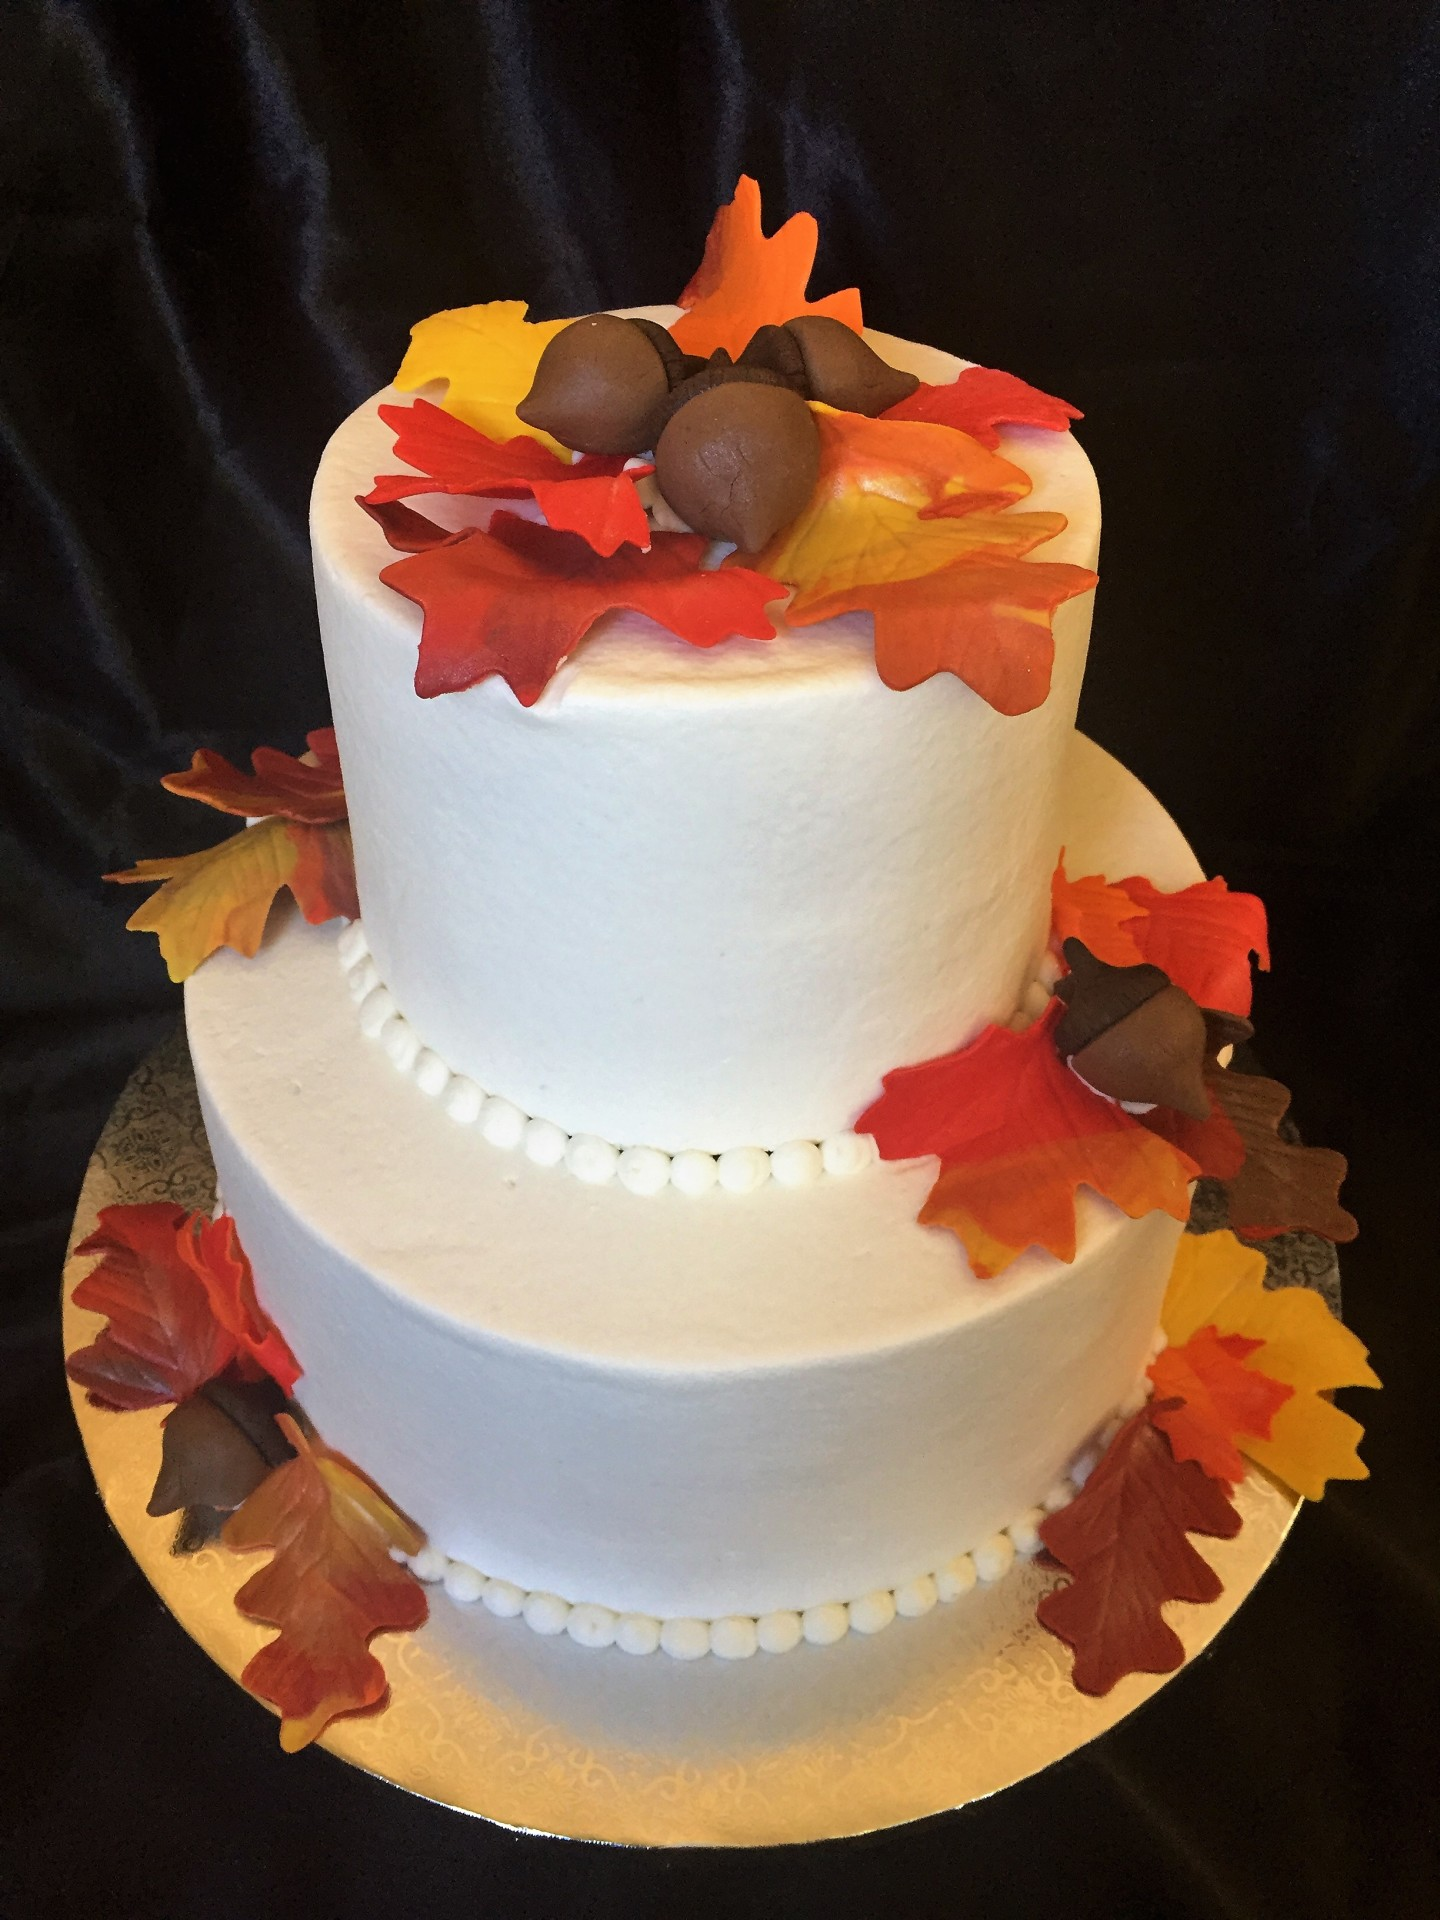 A perfect cake for a small fall wedding!